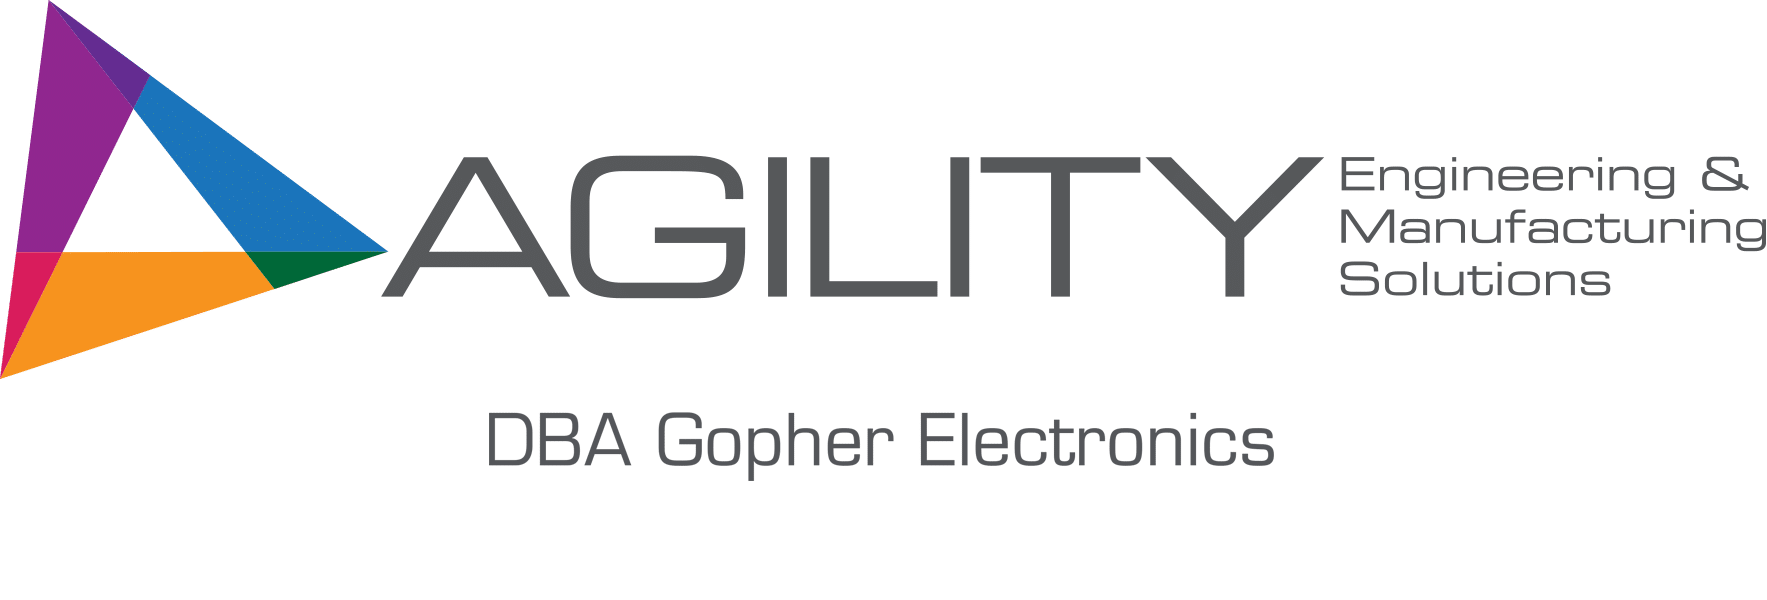 Agility Engineering & Manufacturing Solutions